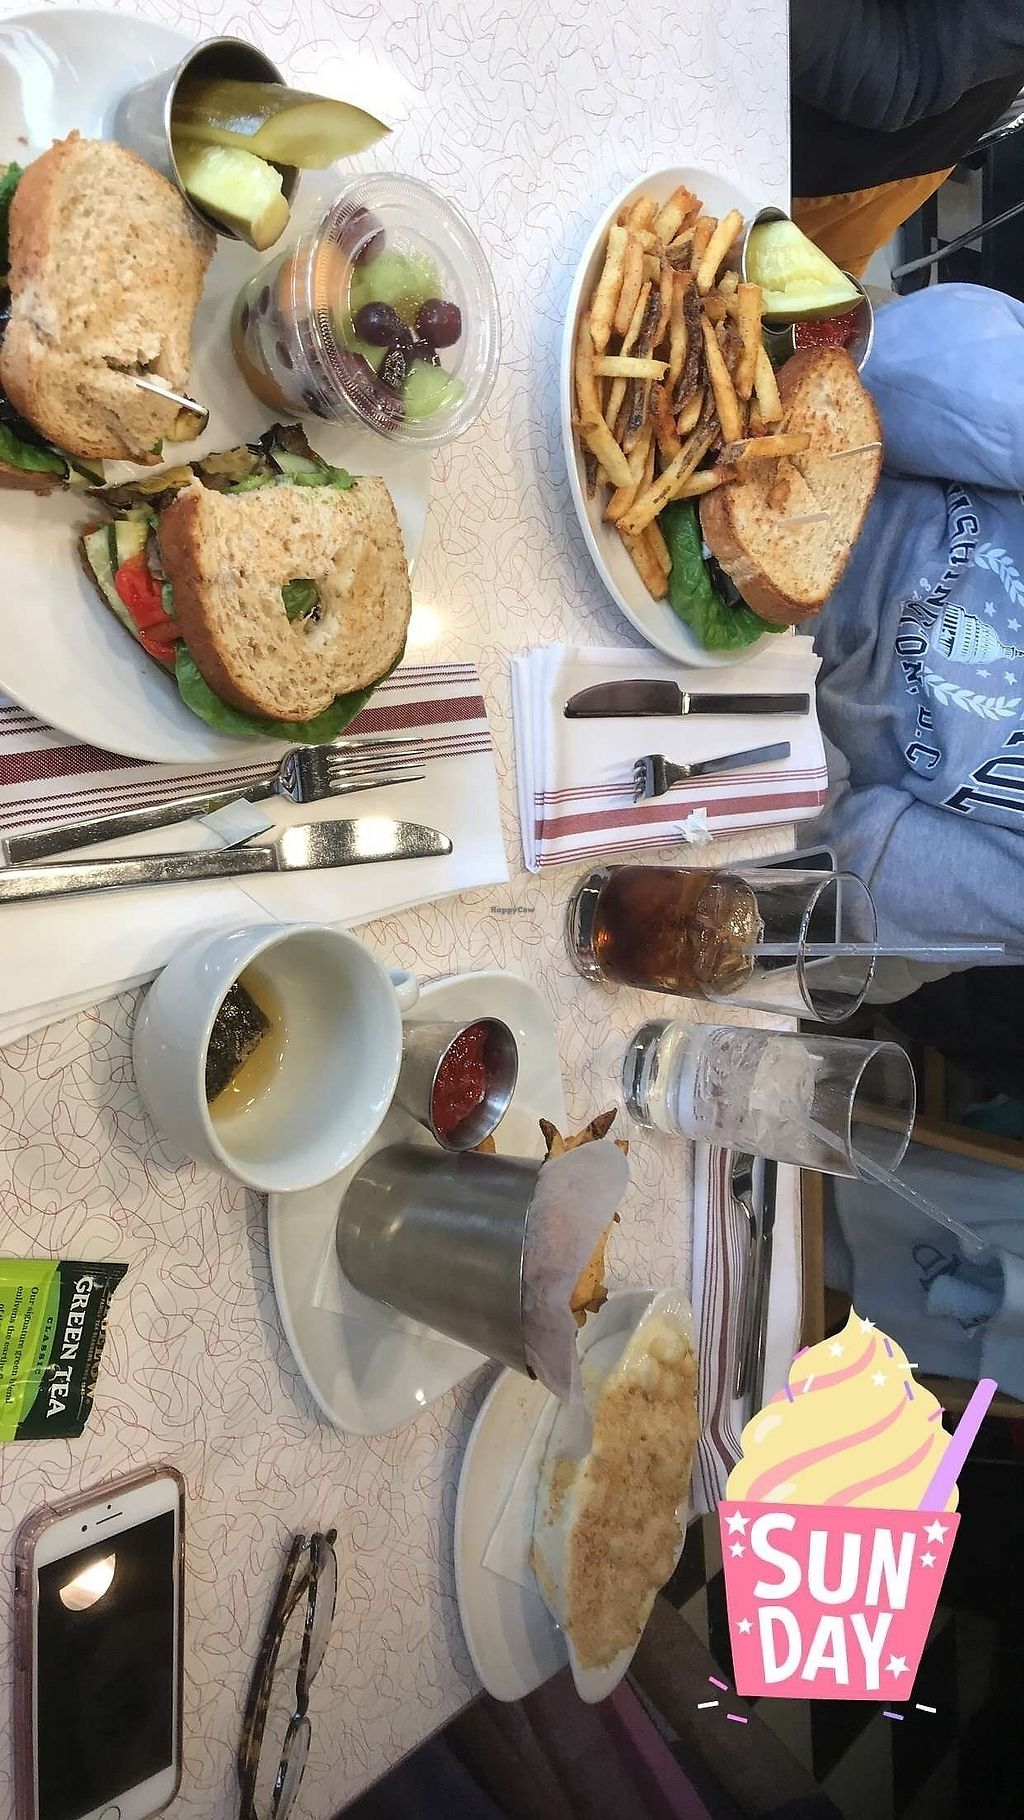 "Photo of Food 101  by <a href=""/members/profile/20daisy00"">20daisy00</a> <br/>Vegan version of vegetable powerhouse sandwich (on left) and green tea <br/> March 30, 2018  - <a href='/contact/abuse/image/116157/378178'>Report</a>"